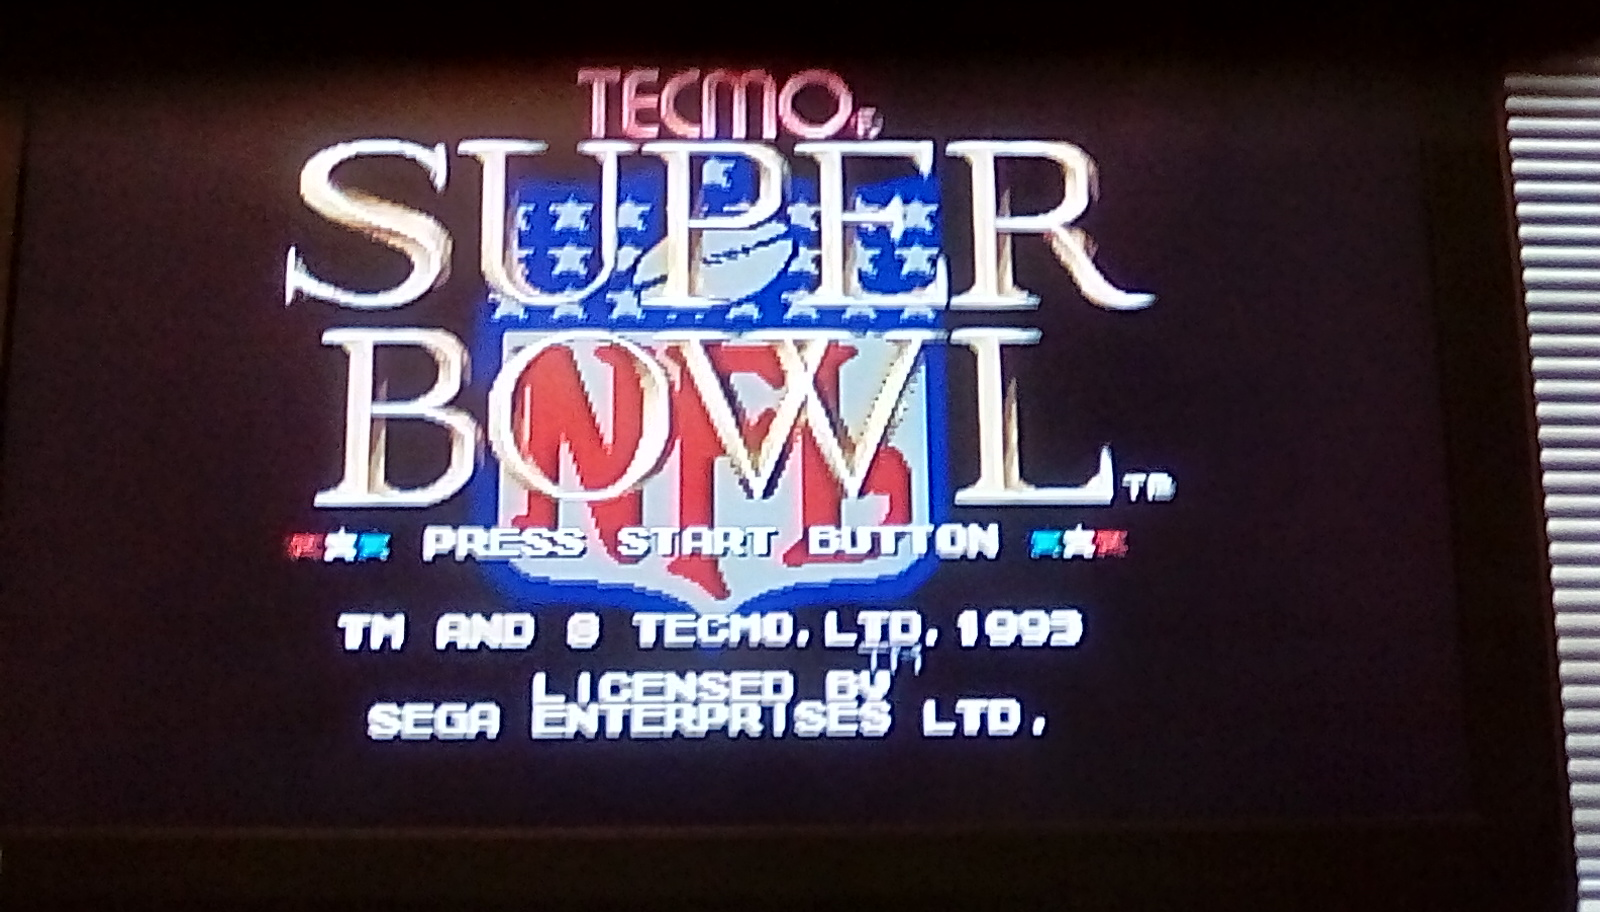 JML101582: Tecmo Super Bowl [Most Total Yards In A Preseason Game] (Sega Genesis / MegaDrive Emulated) 623 points on 2019-01-15 14:44:41